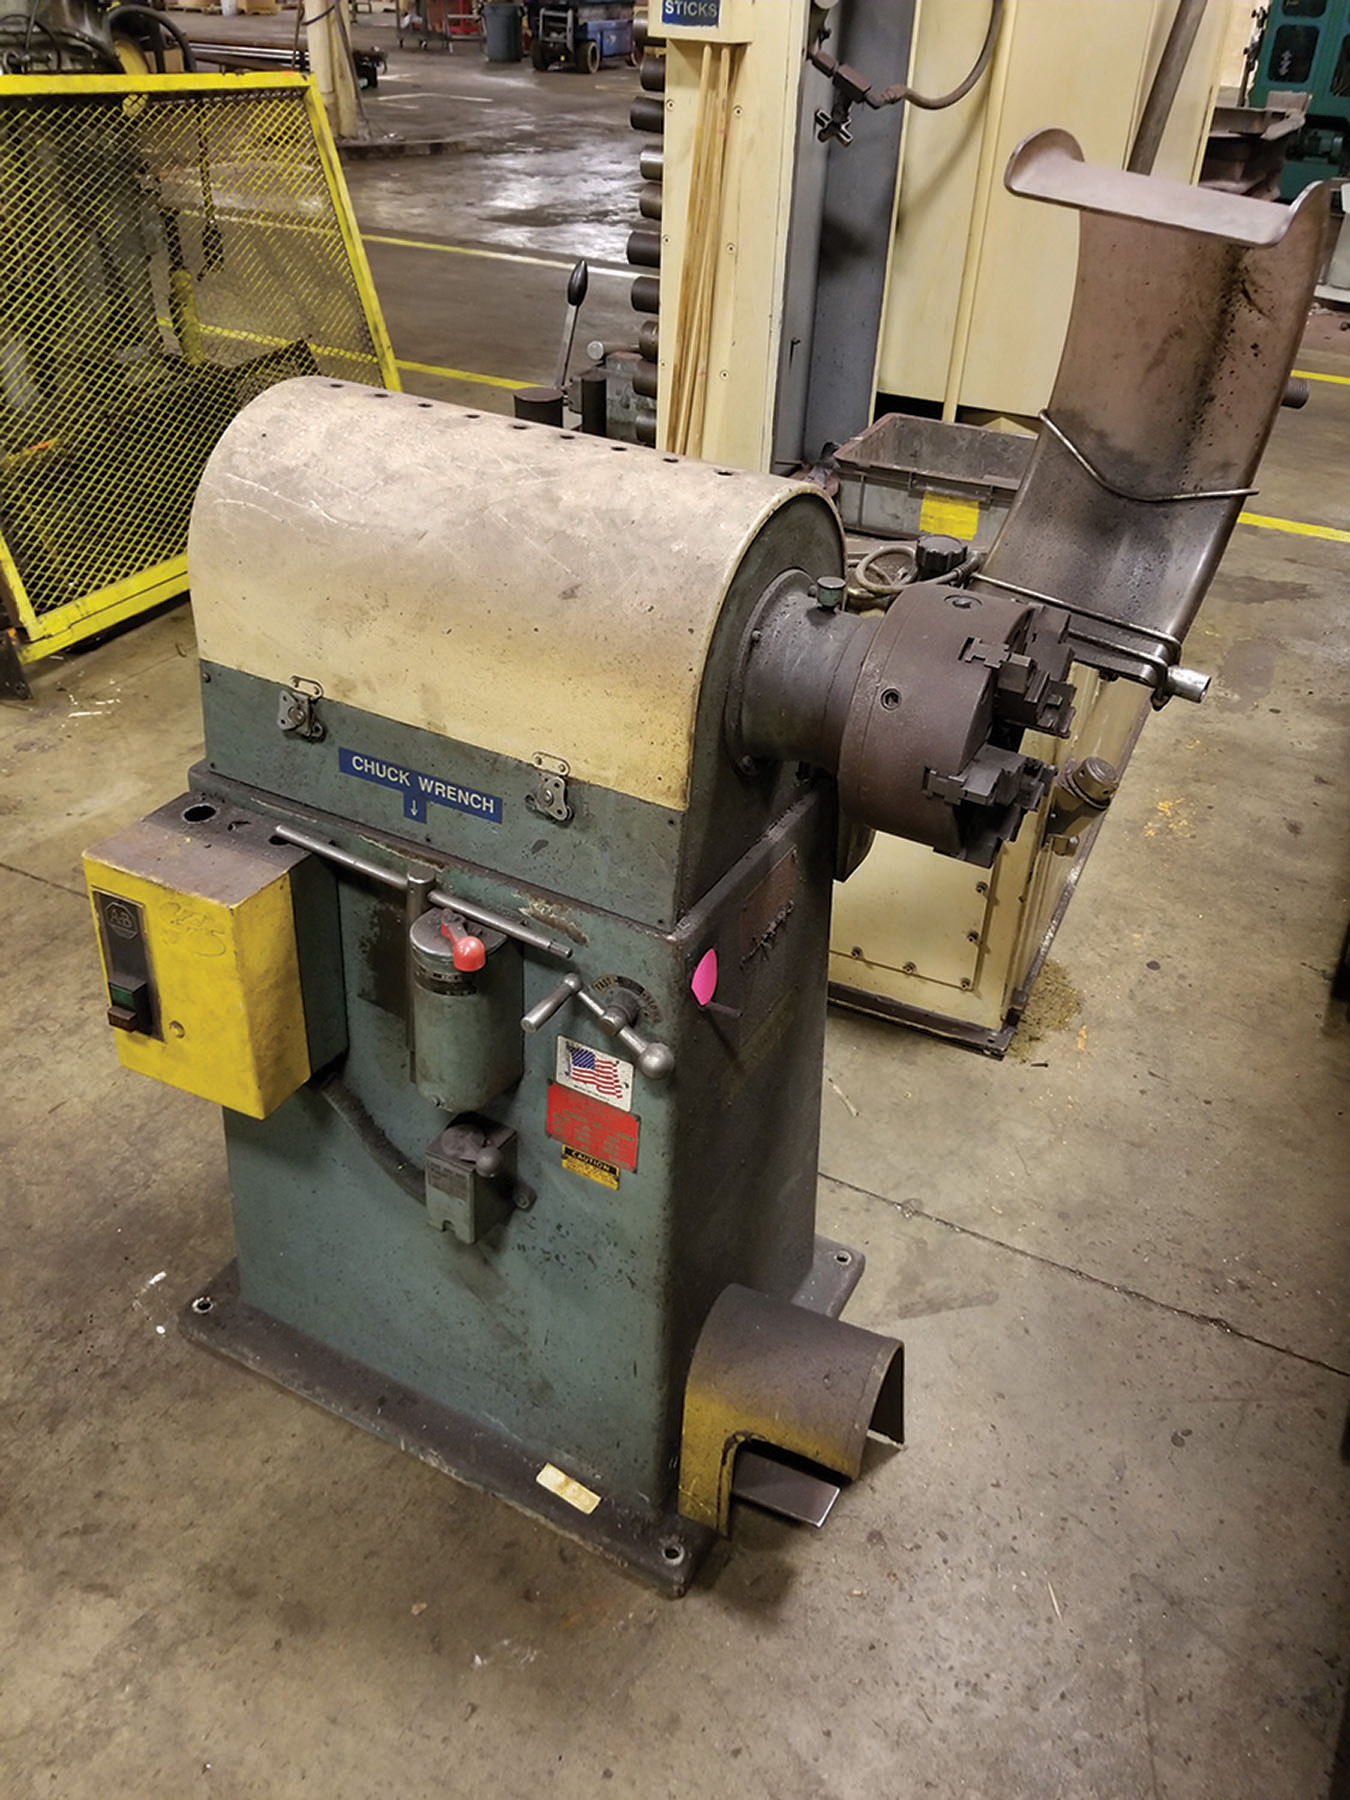 Lot 43 - SCHAUER SPEED LATHE, MODEL VA4BC, FRAME 184T, S/N F 41194M, 1.5/3-HP, 400-4,800-RPM, 3-OH, FOOT